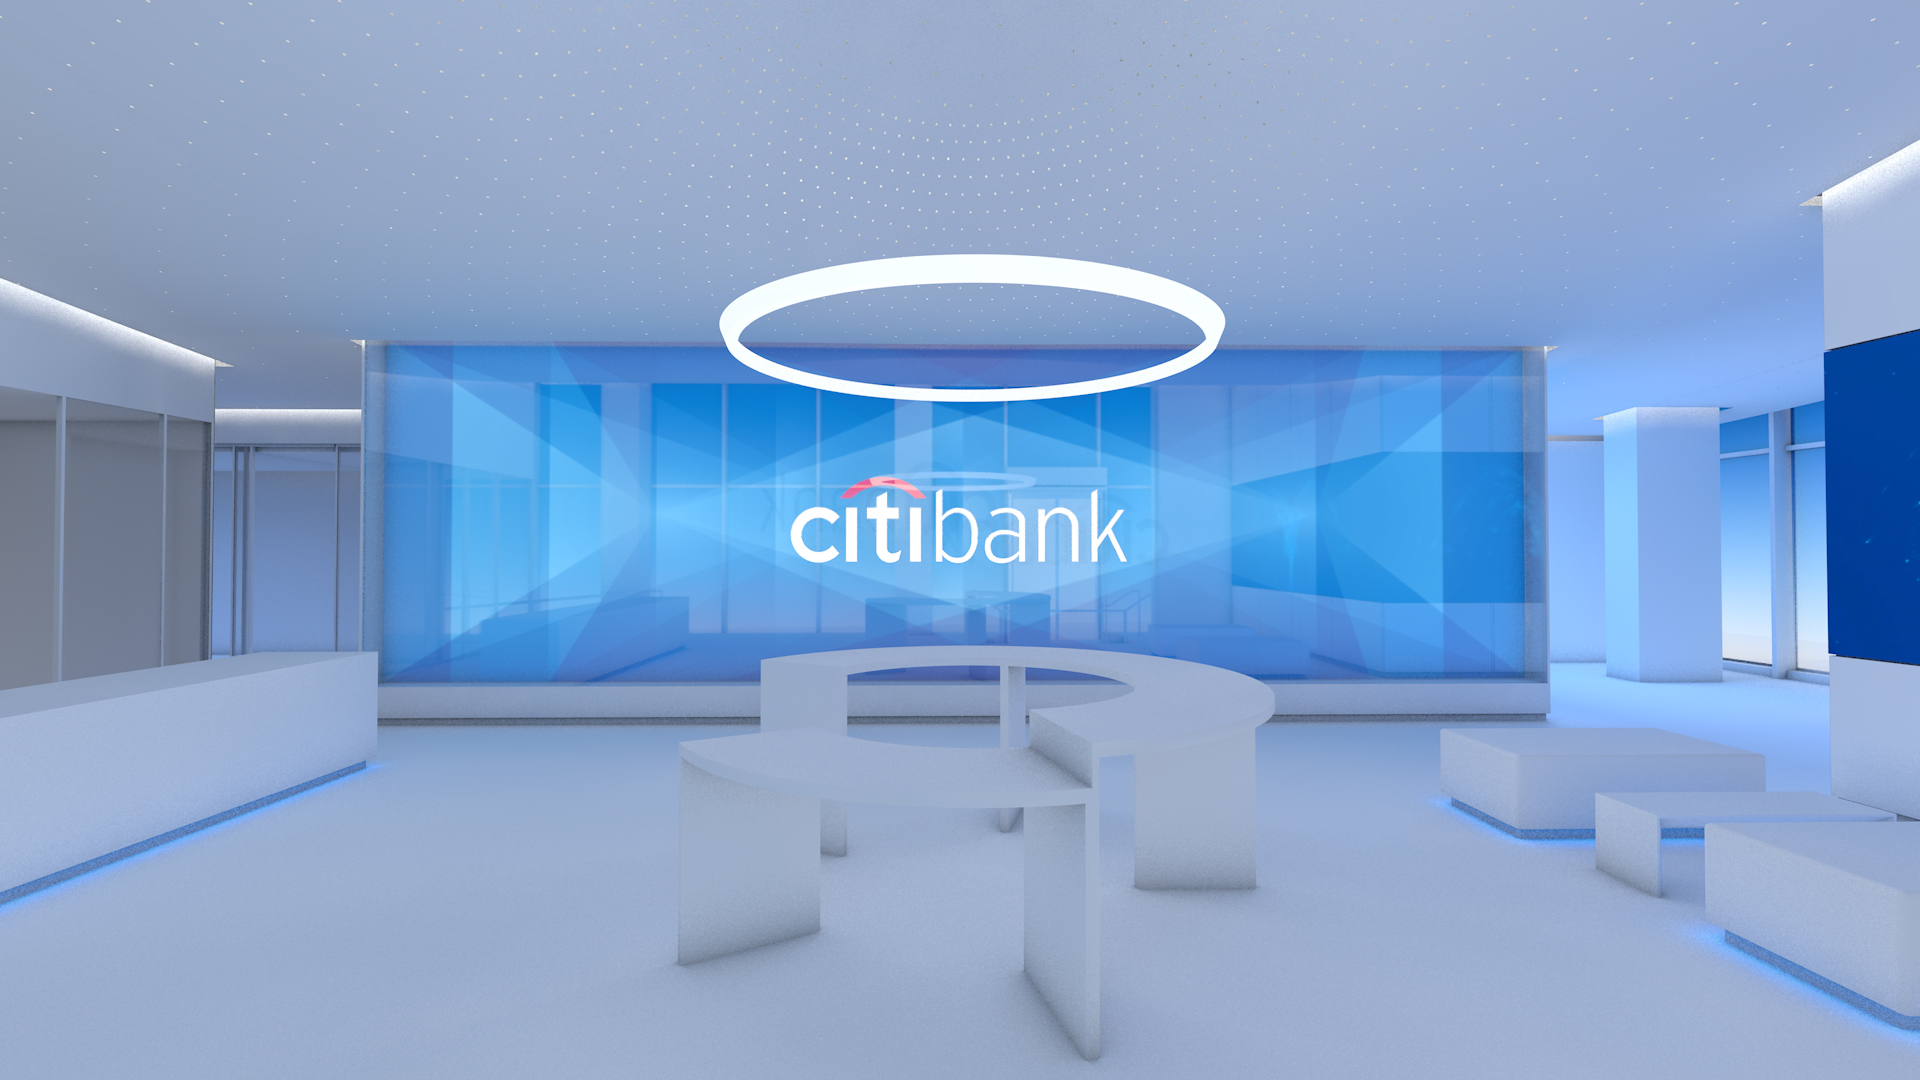 Citi_Day_Feature-Wall_v004.jpg